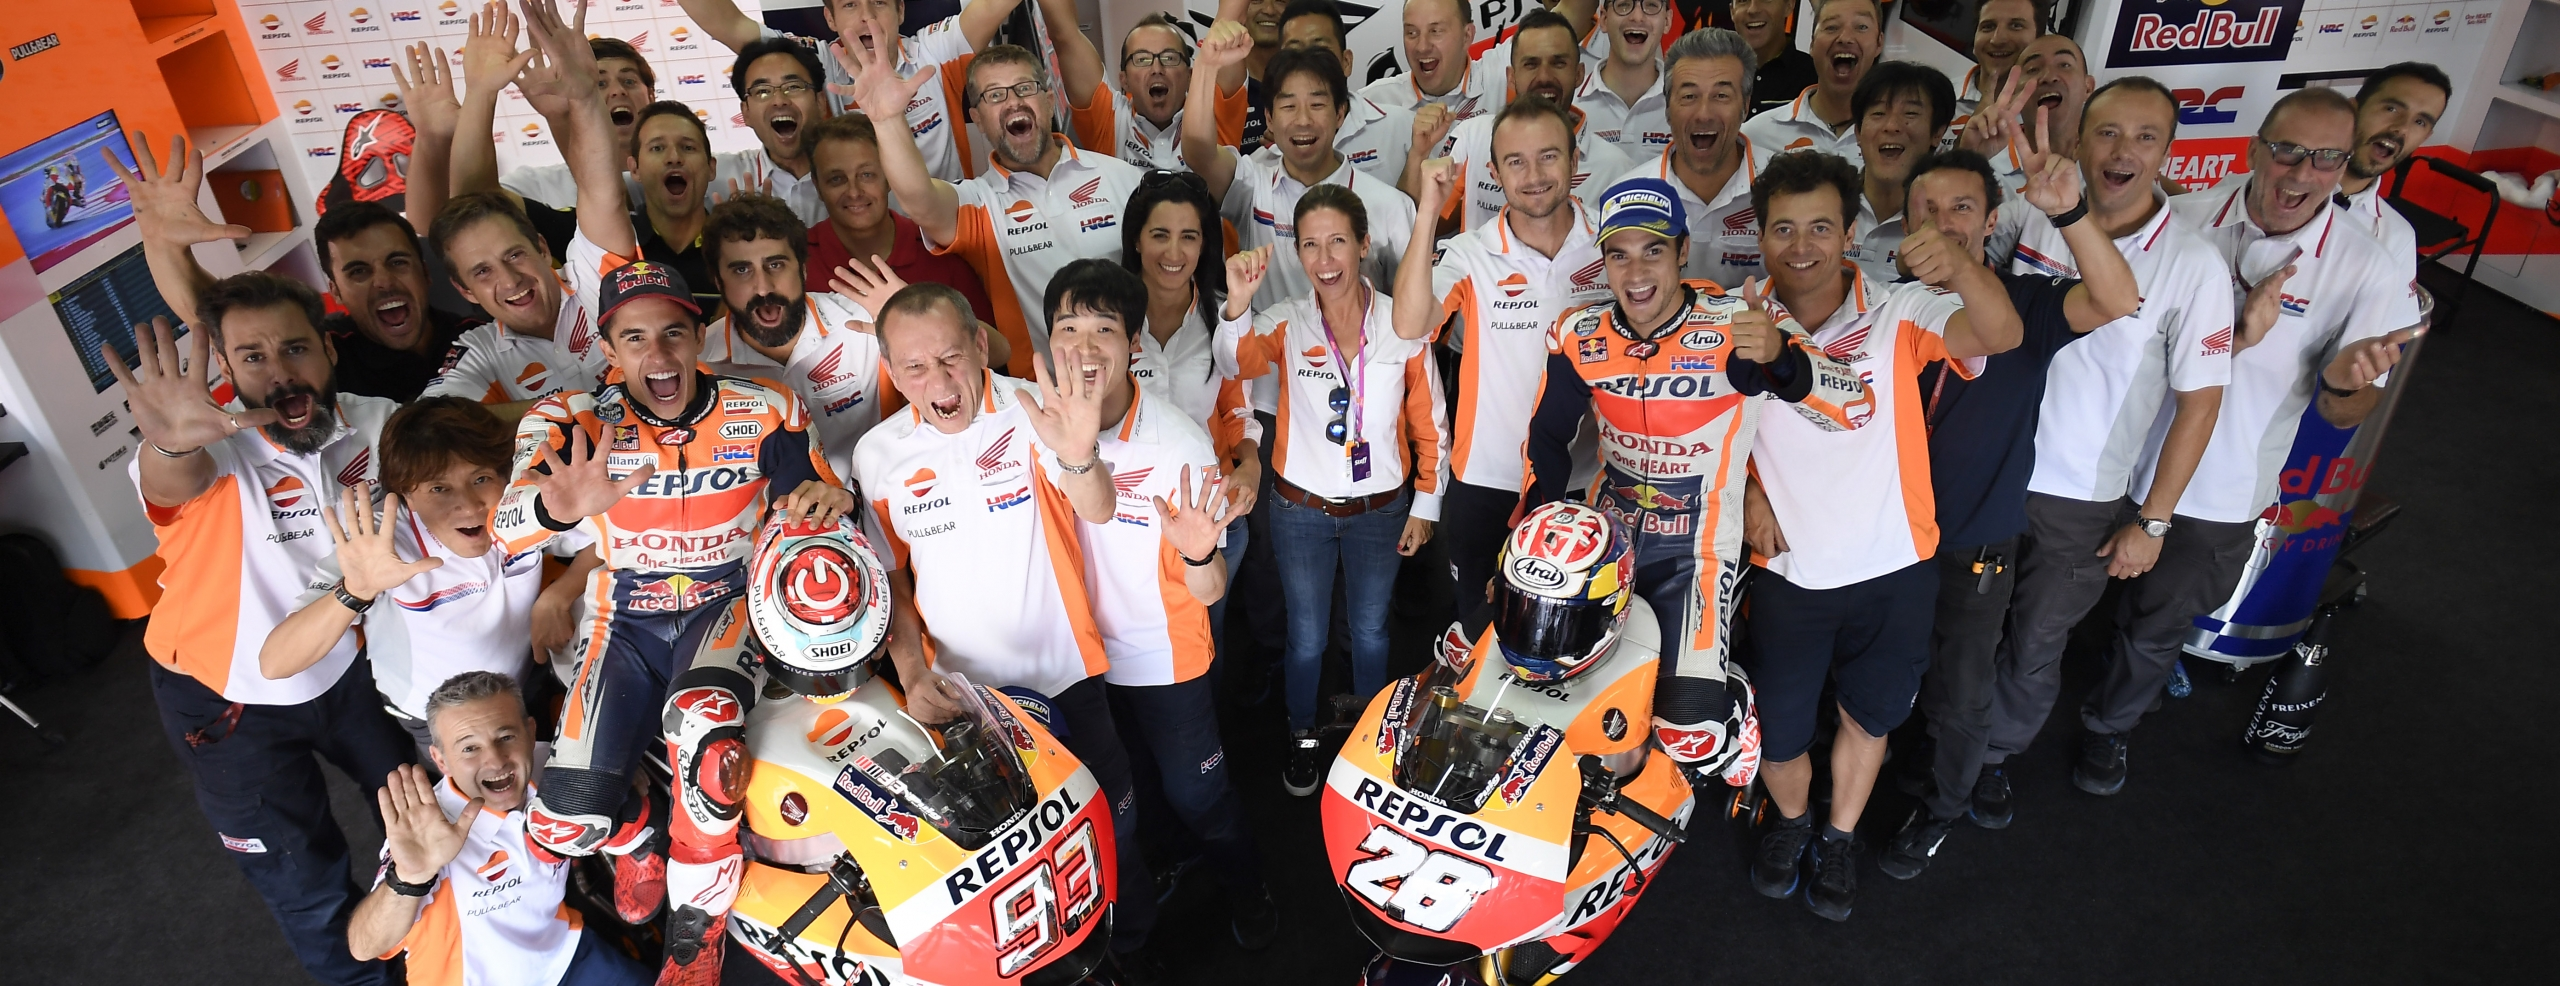 Master-class race for Marquez and Pedrosa, first and second at Motorland Aragon